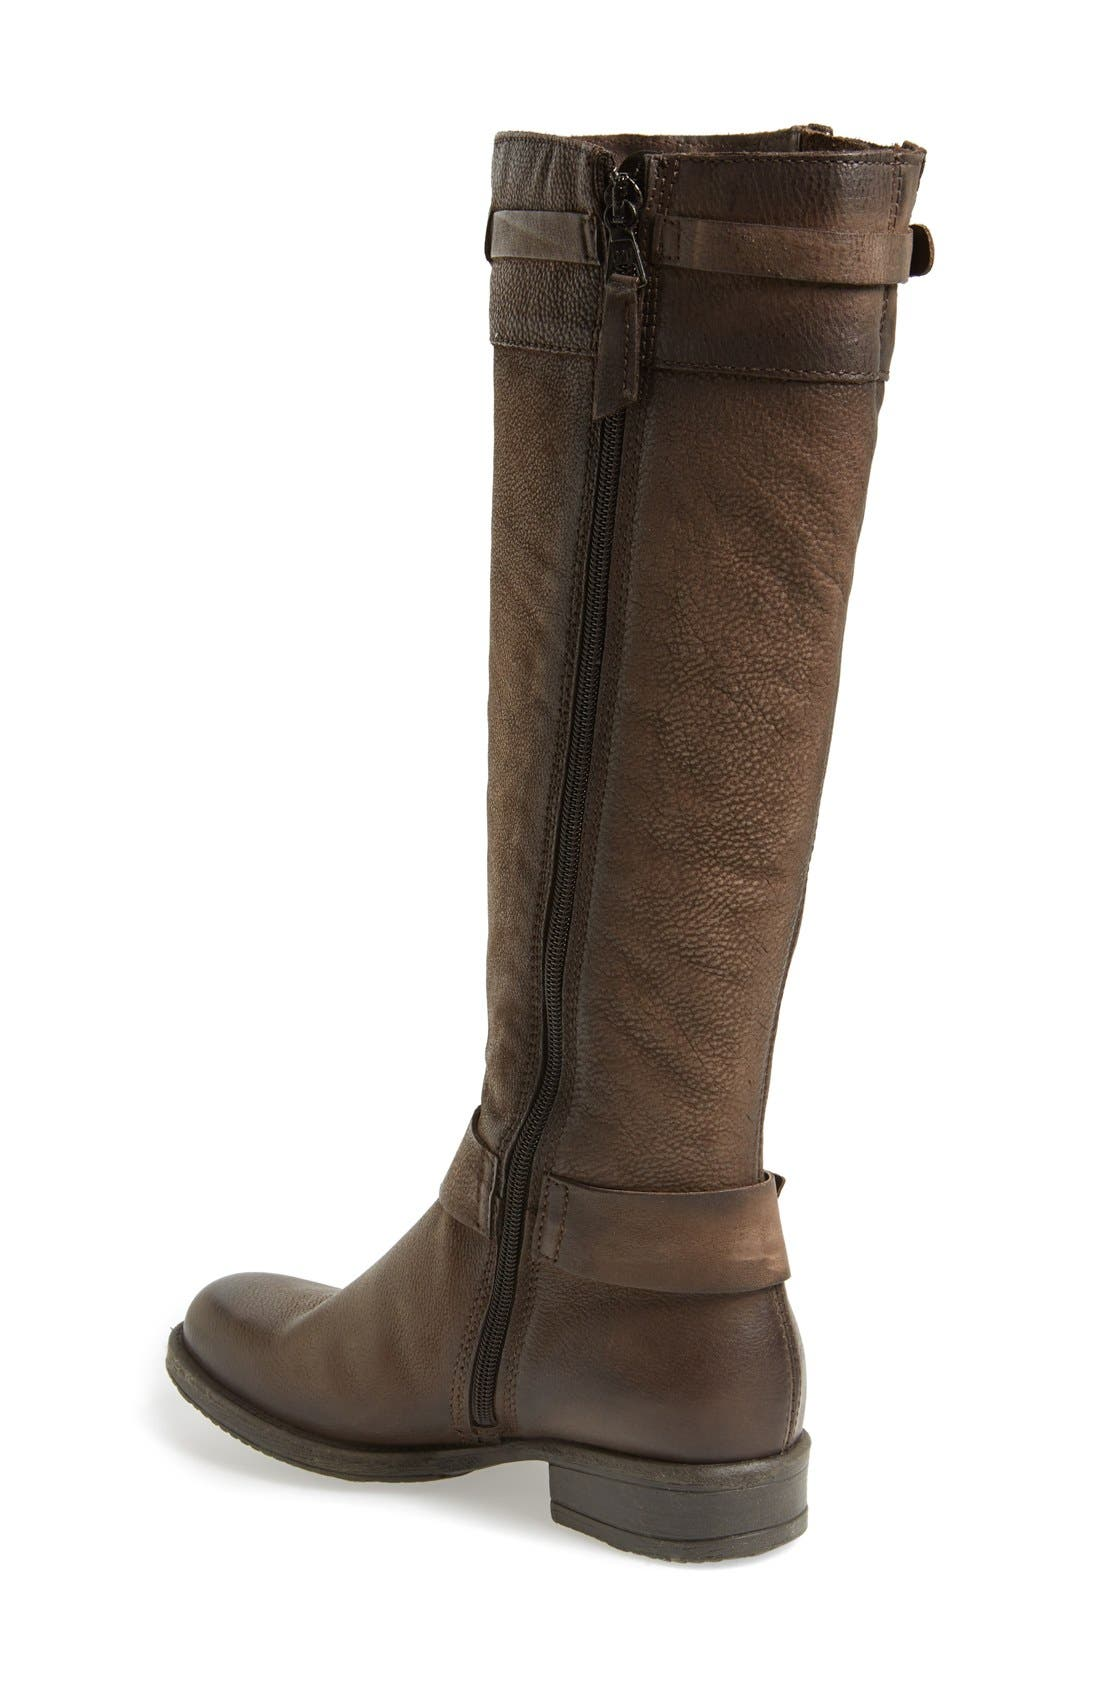 Alternate Image 2  - Miz Mooz 'Nicola' Riding Boot (Women)